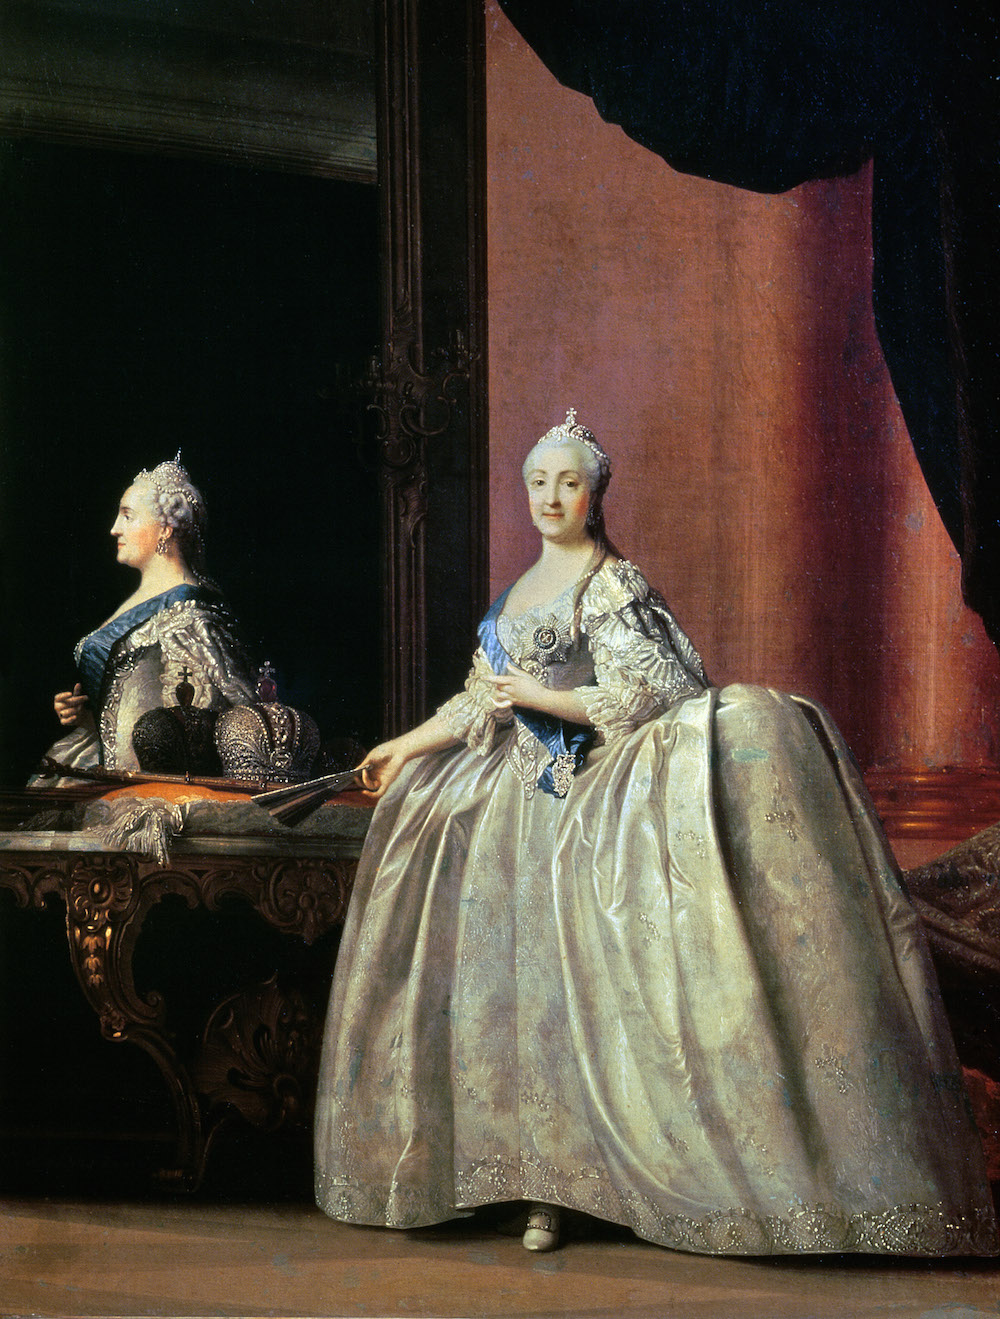 Empress Catherine II before the Mirror, 1779, Vigilus Eriksen / State Russian Museum, St. Petersburg, Russia / Bridgeman Images